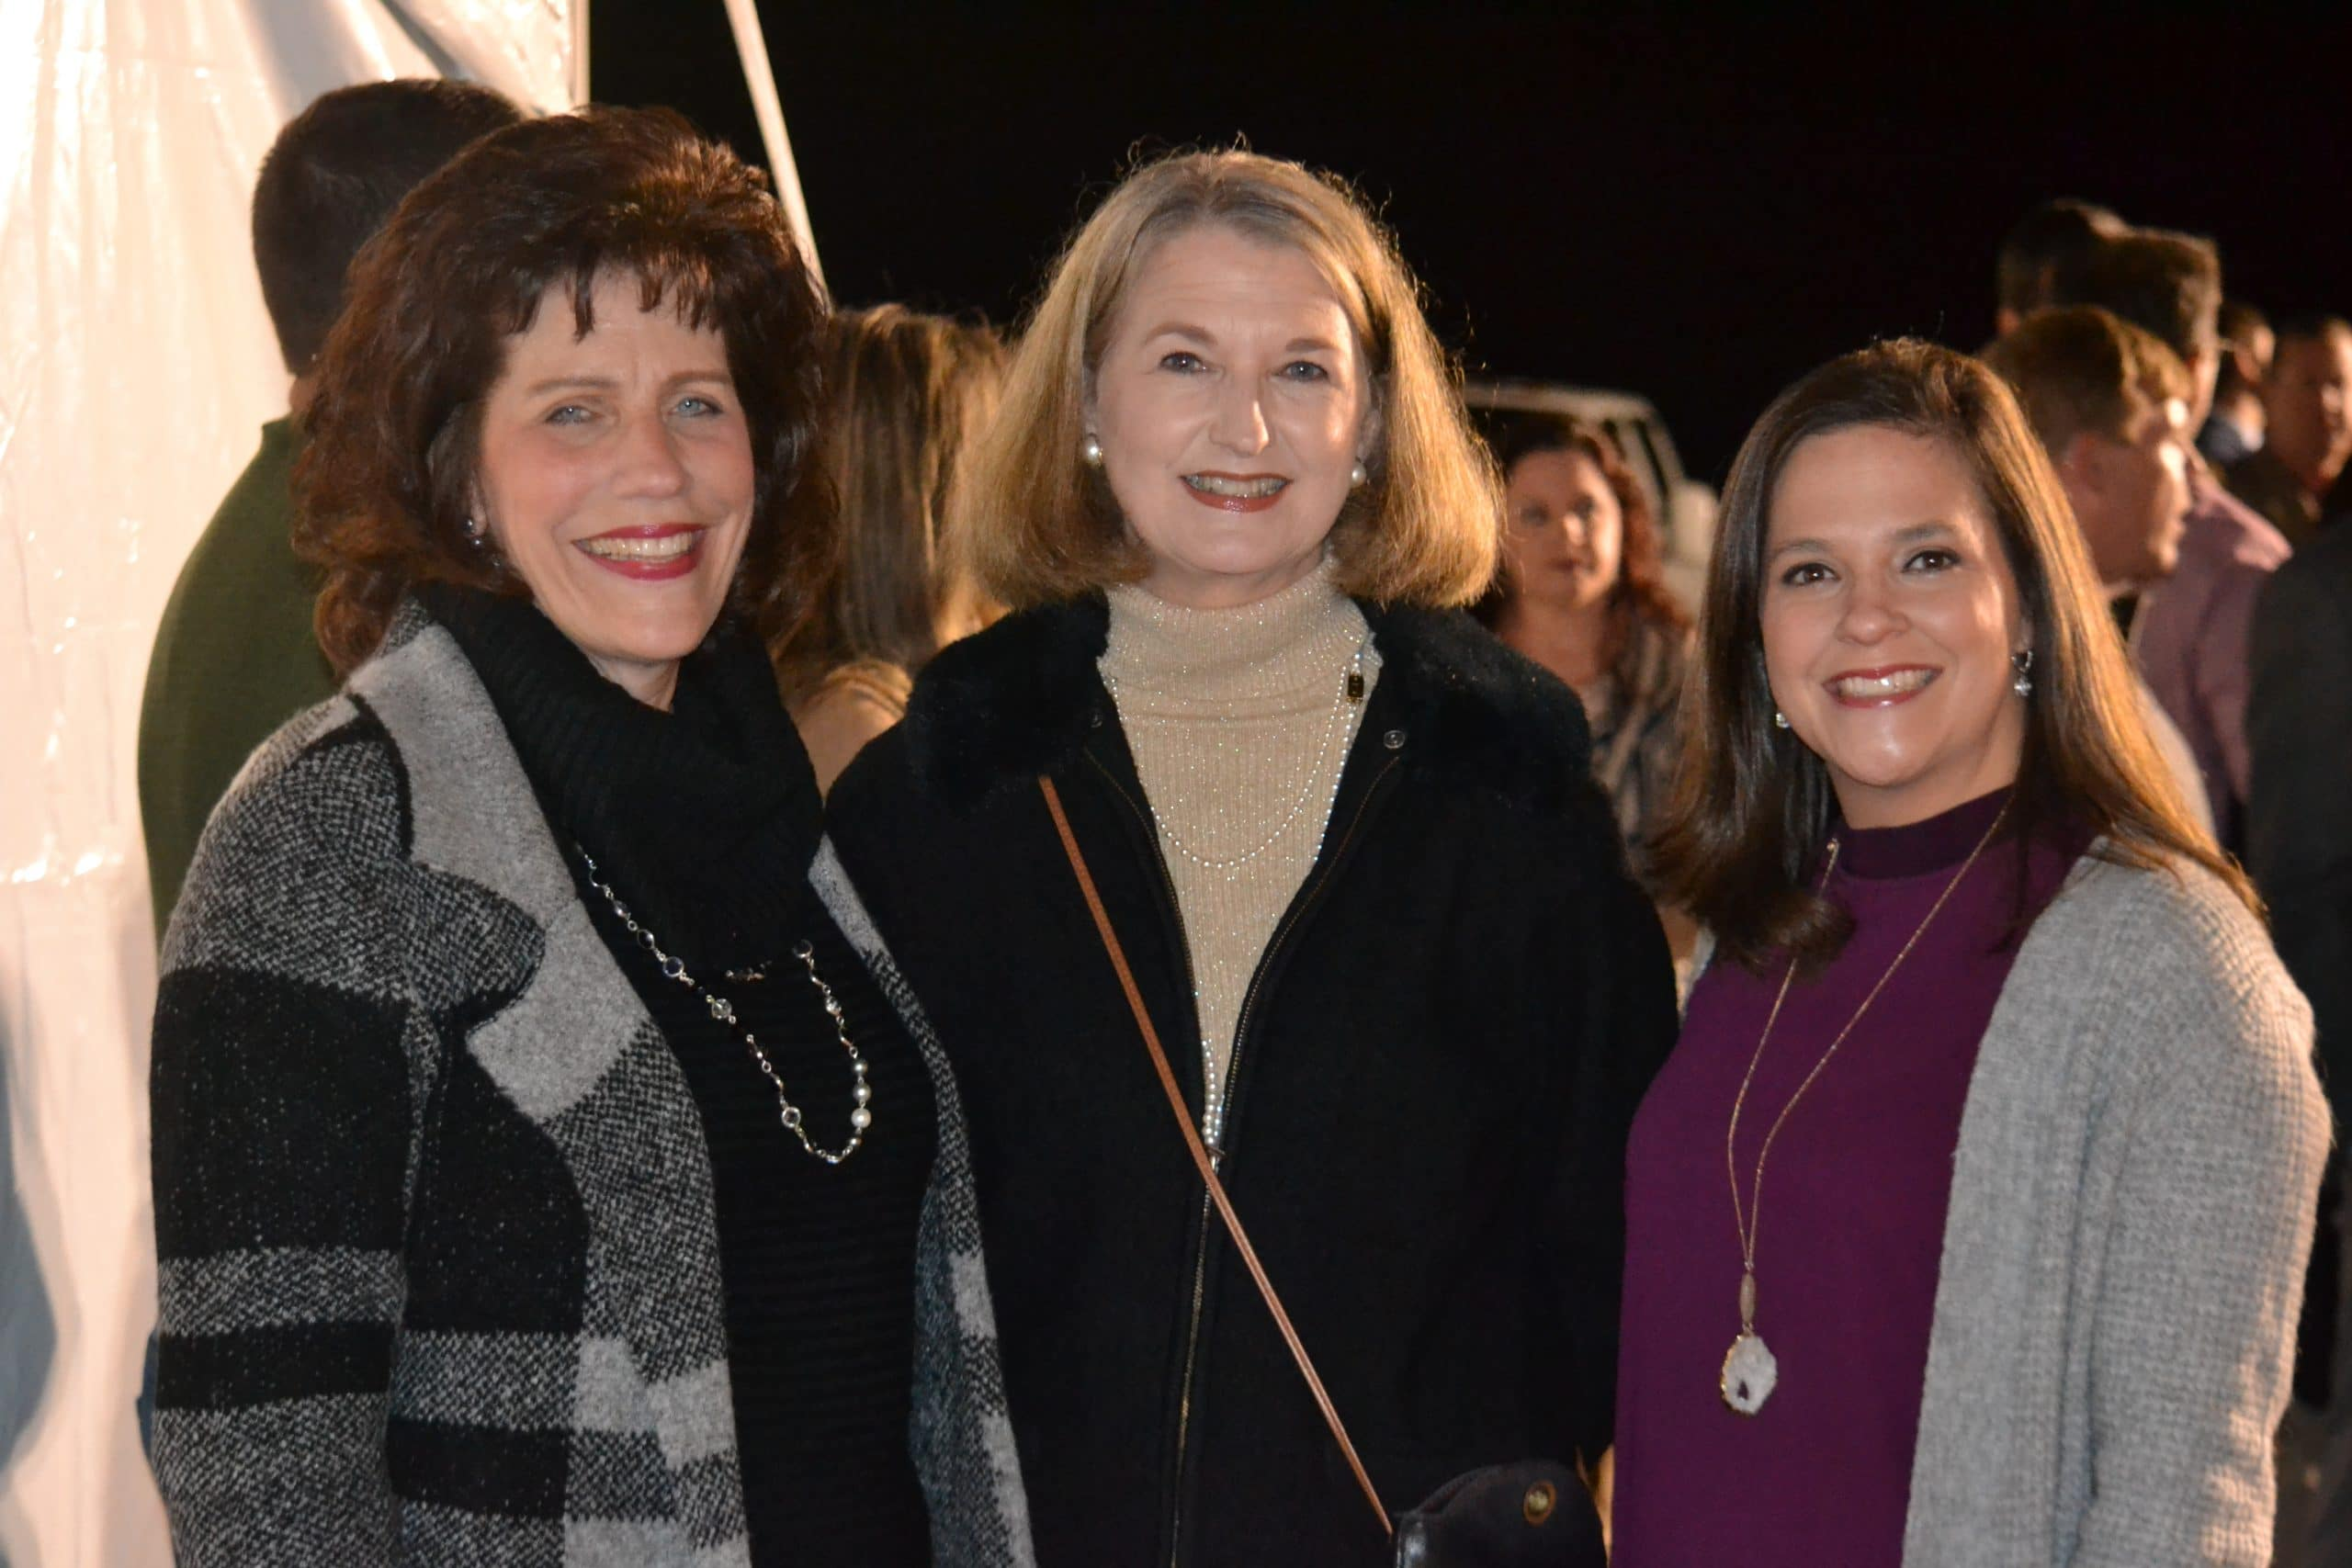 Patty VanderWal, Ann Boutwell, Lisa Byrd